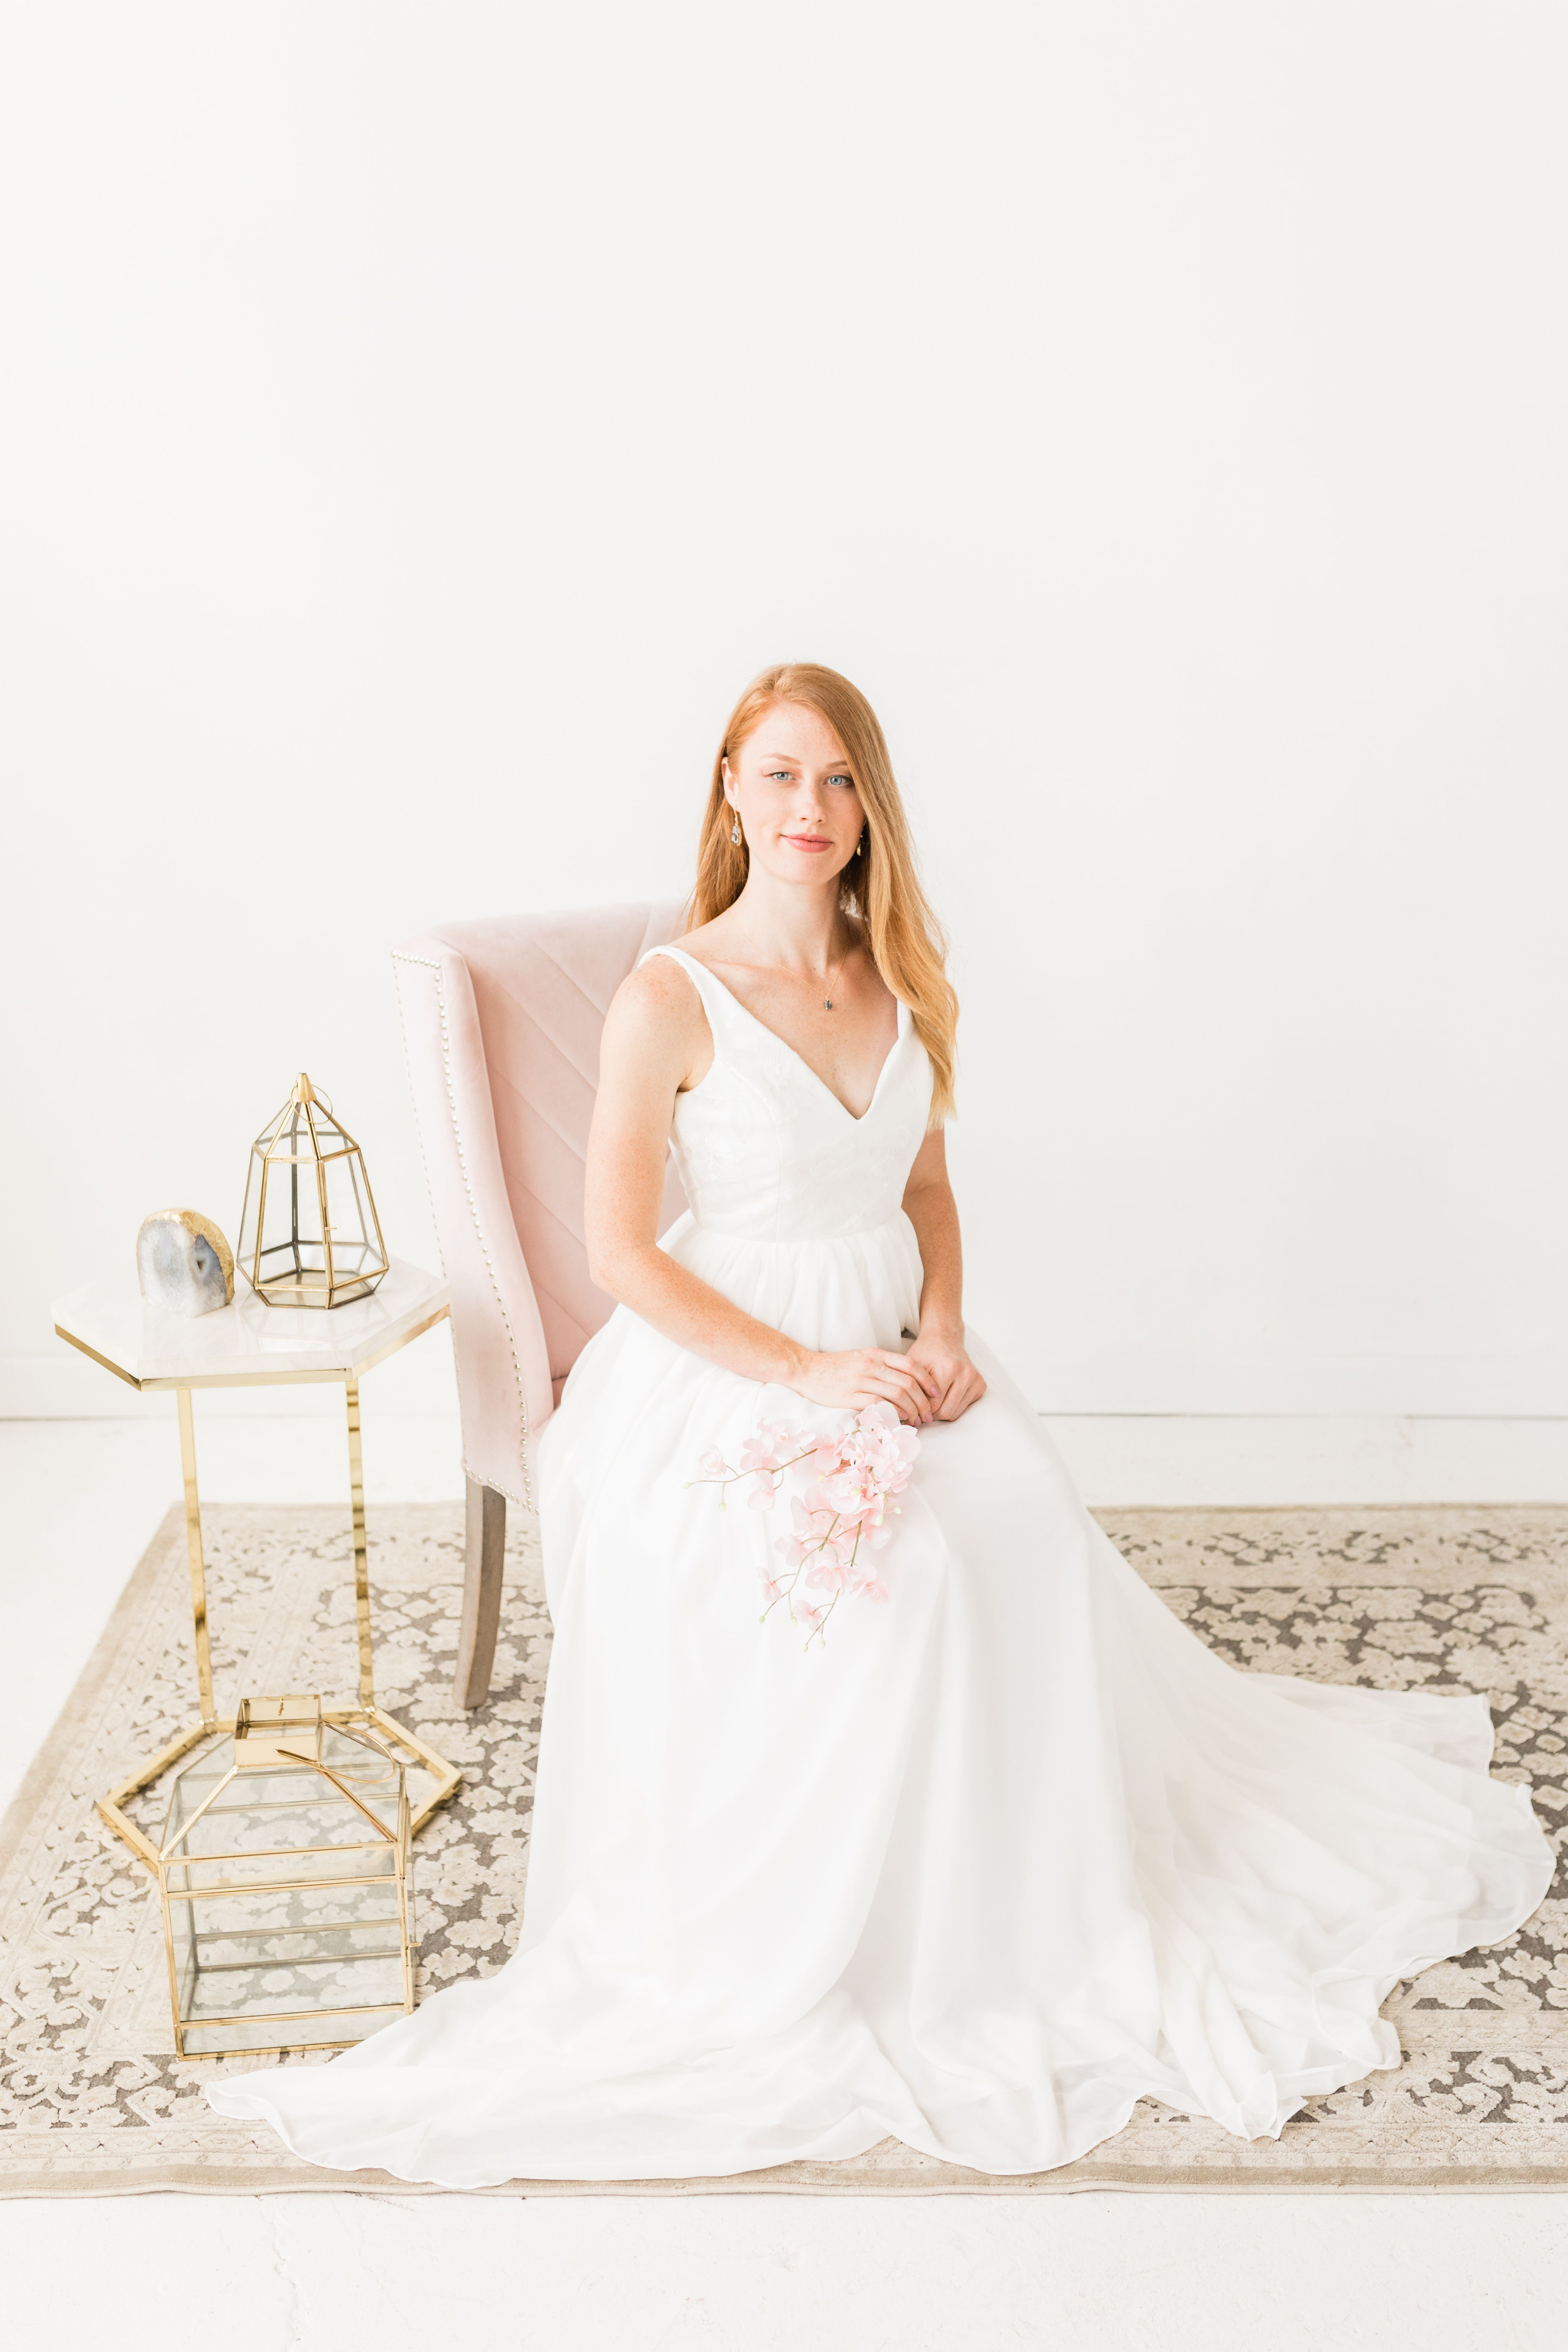 Hyacinth Bridal S 2019 Collection Look Book Creative Director Stylist And Planner Perry Rose Media Ph Crepe Wedding Dress Wedding Dresses Romantic Dress